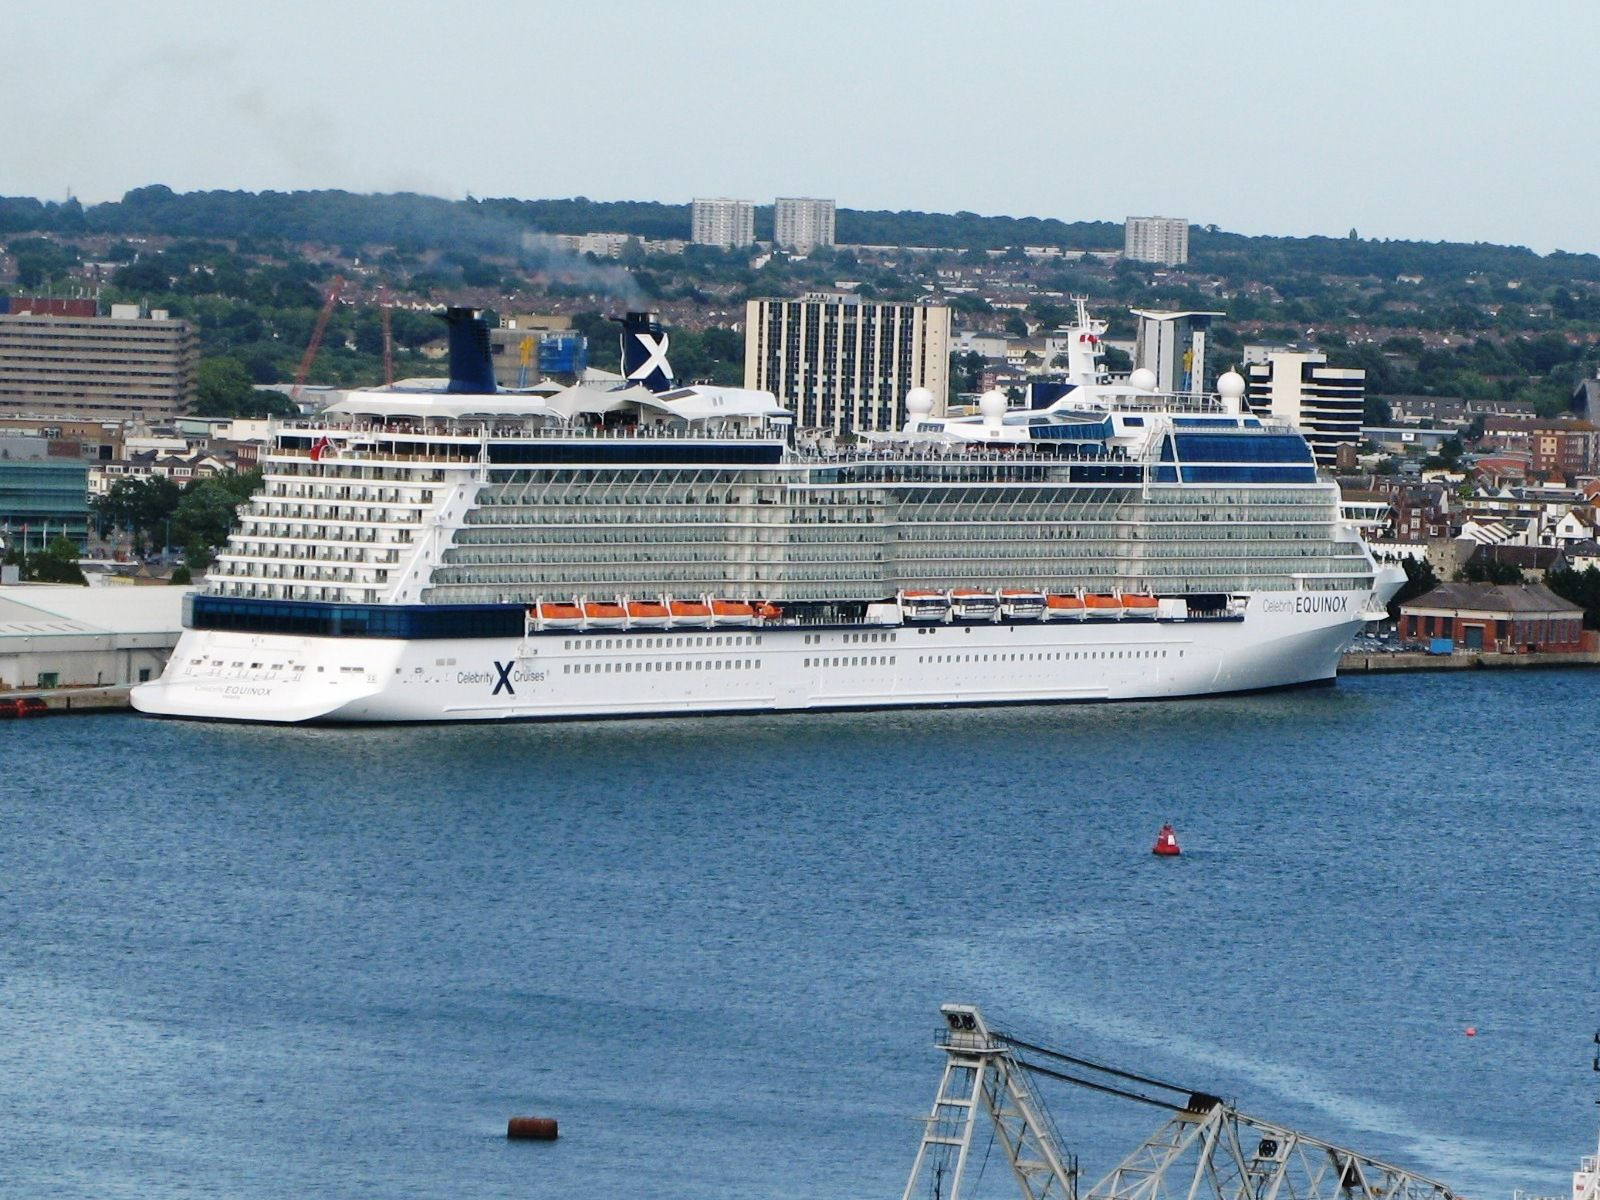 Celebrity Equinox Cruise Ship I Need A Break From Work What About - Celebrity eclipse cruise ship itinerary